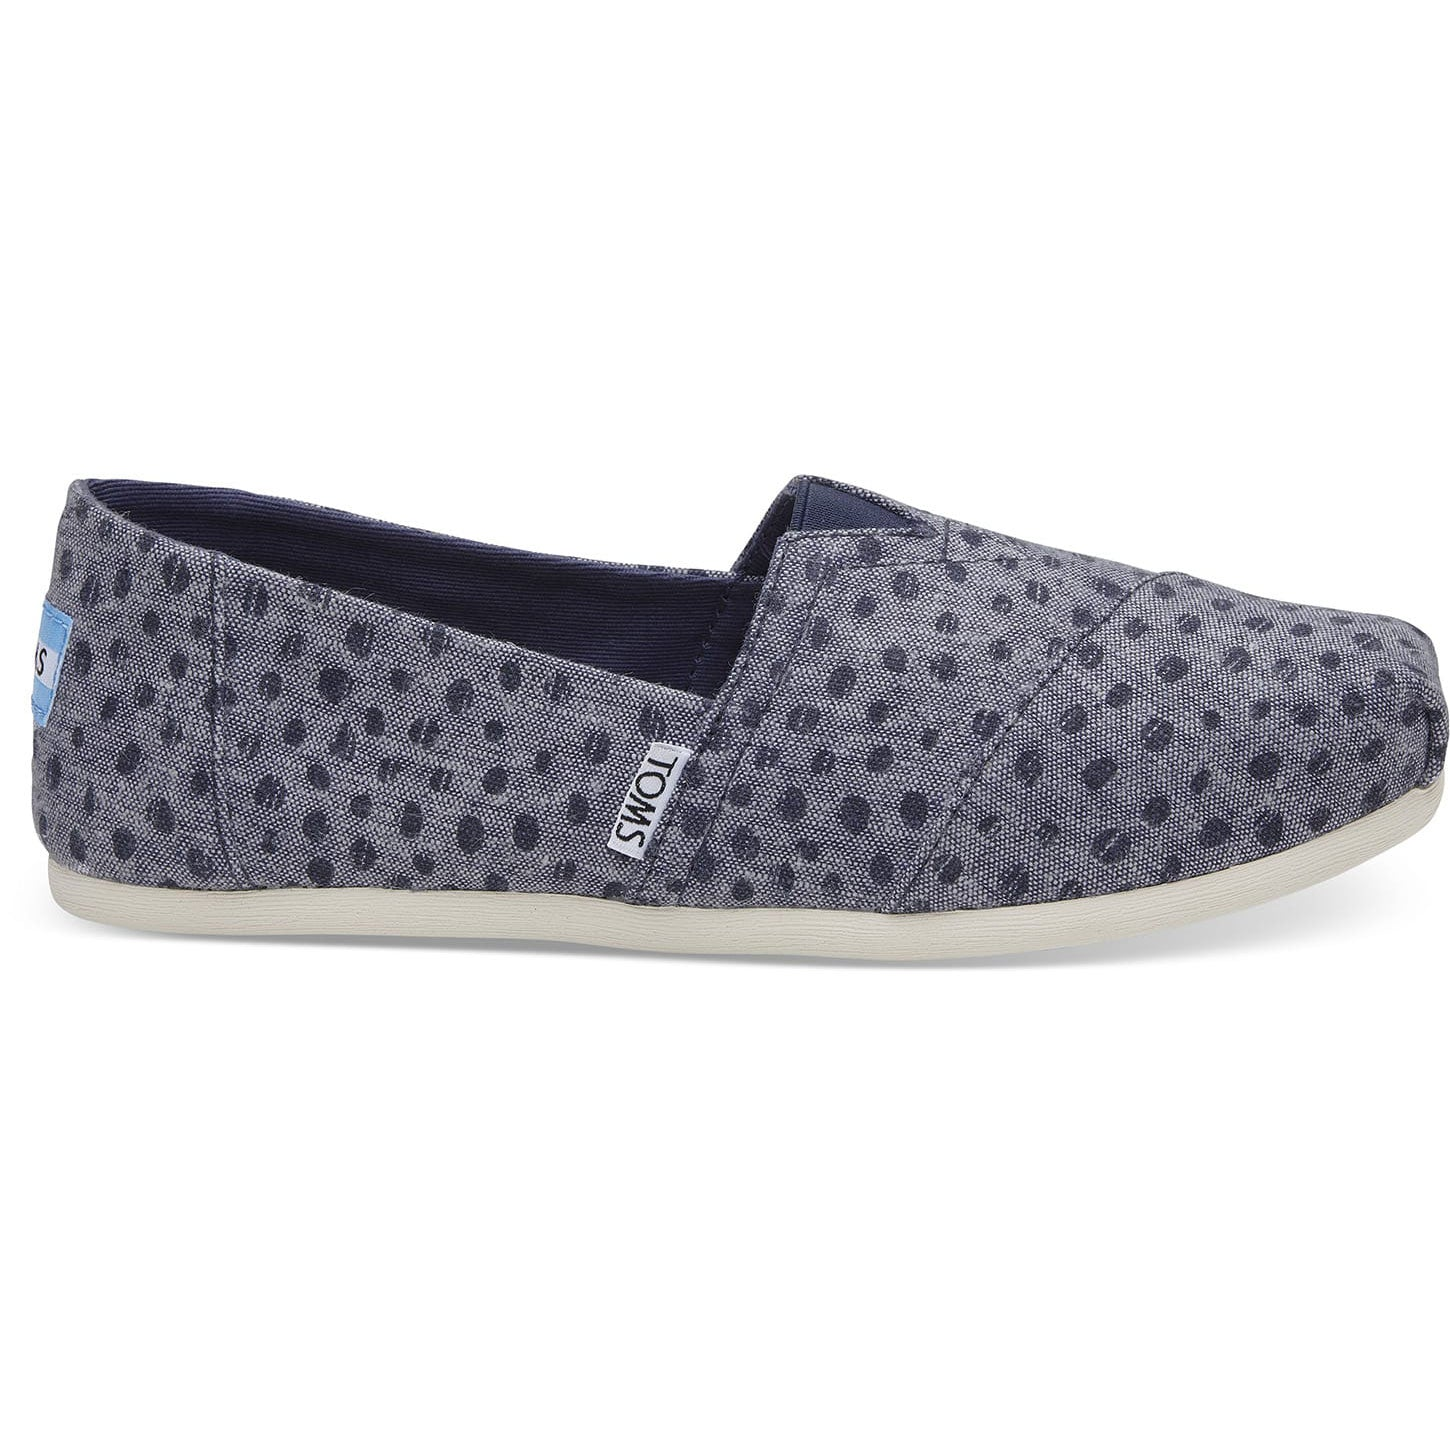 TOMS Womens Classics Navy Slub Chambray Dots Espadrilles Slip On